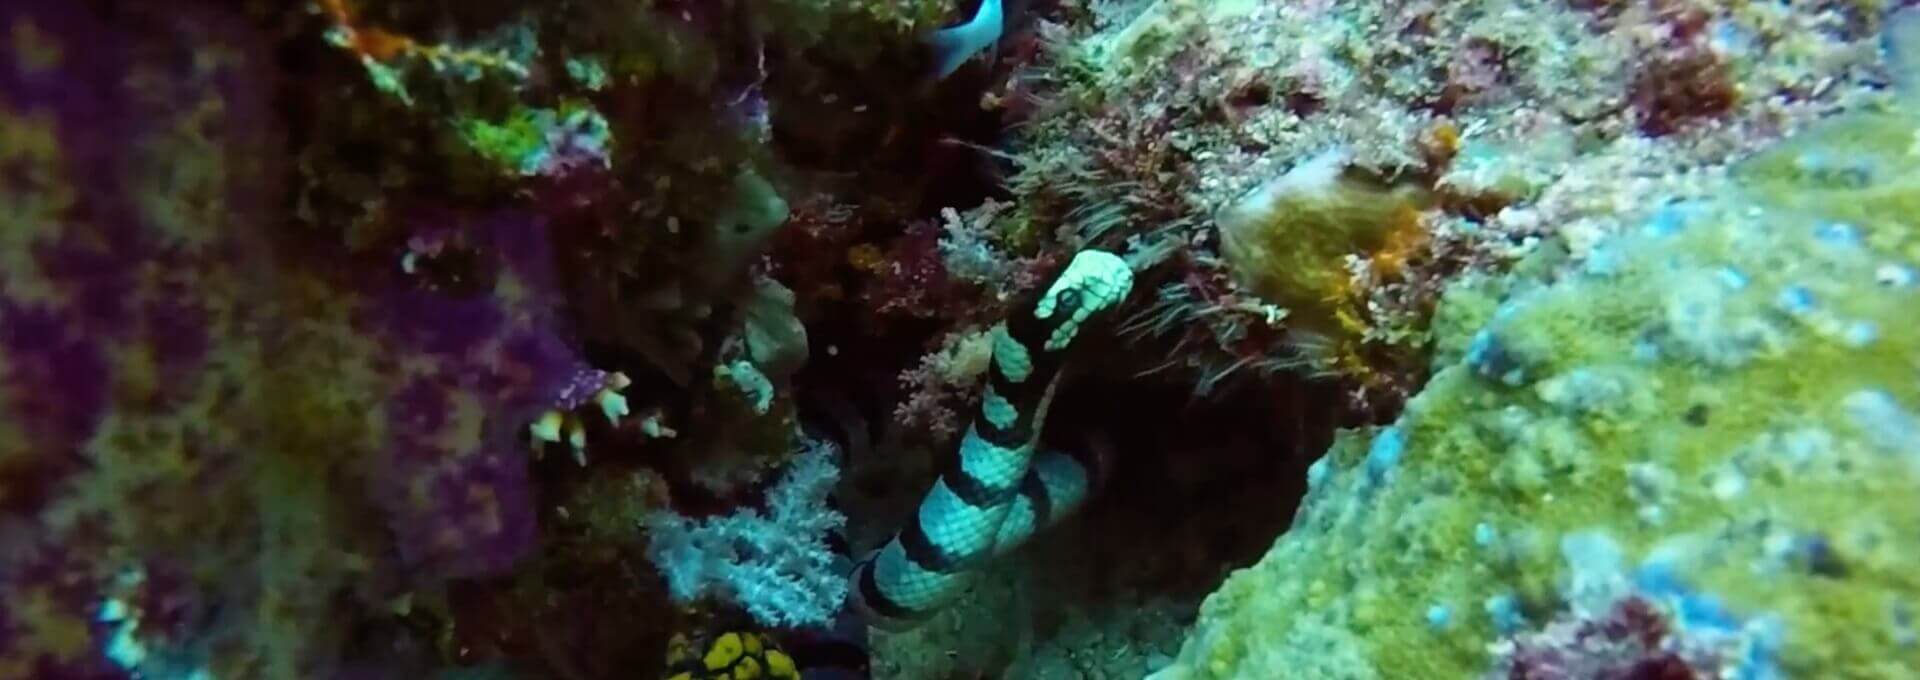 Video Banded Sea Snake Raja Ampat